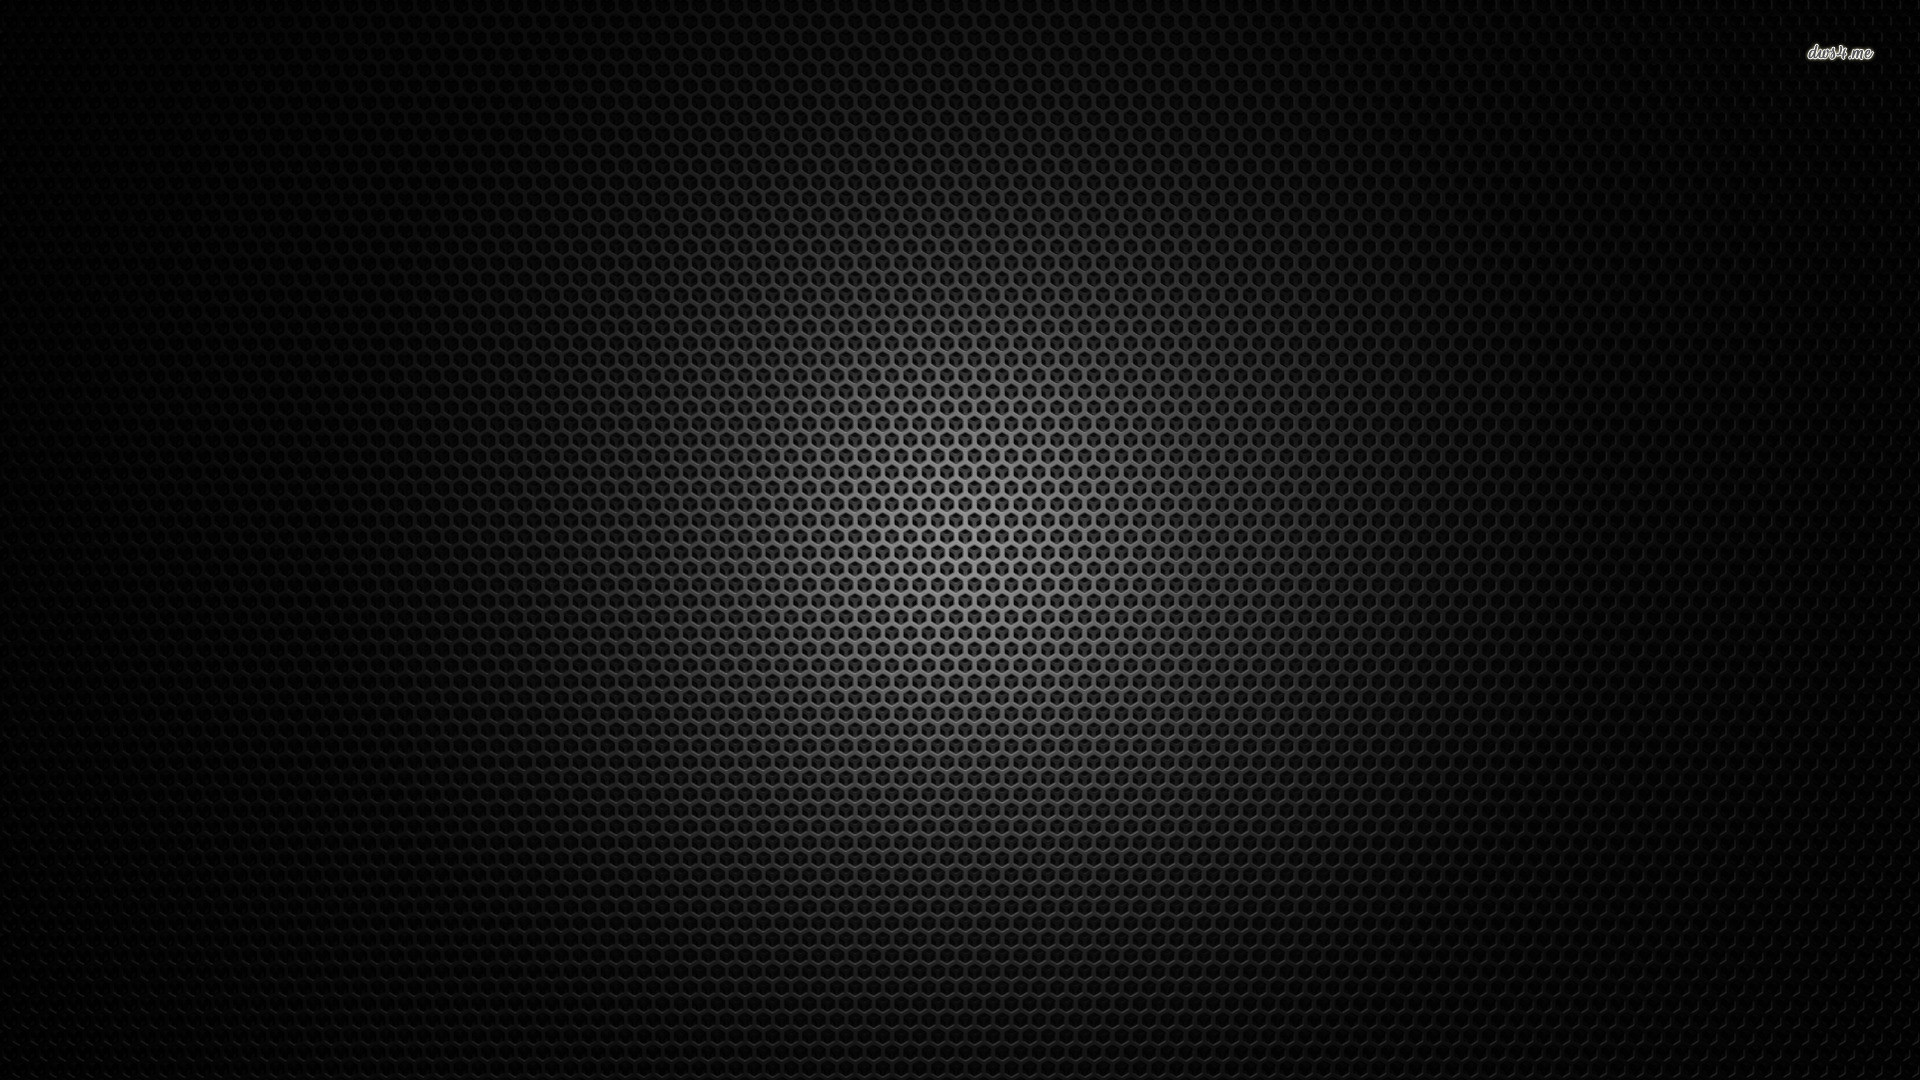 carbon fiber wallpaper high definition with wallpaper hd resolution on .